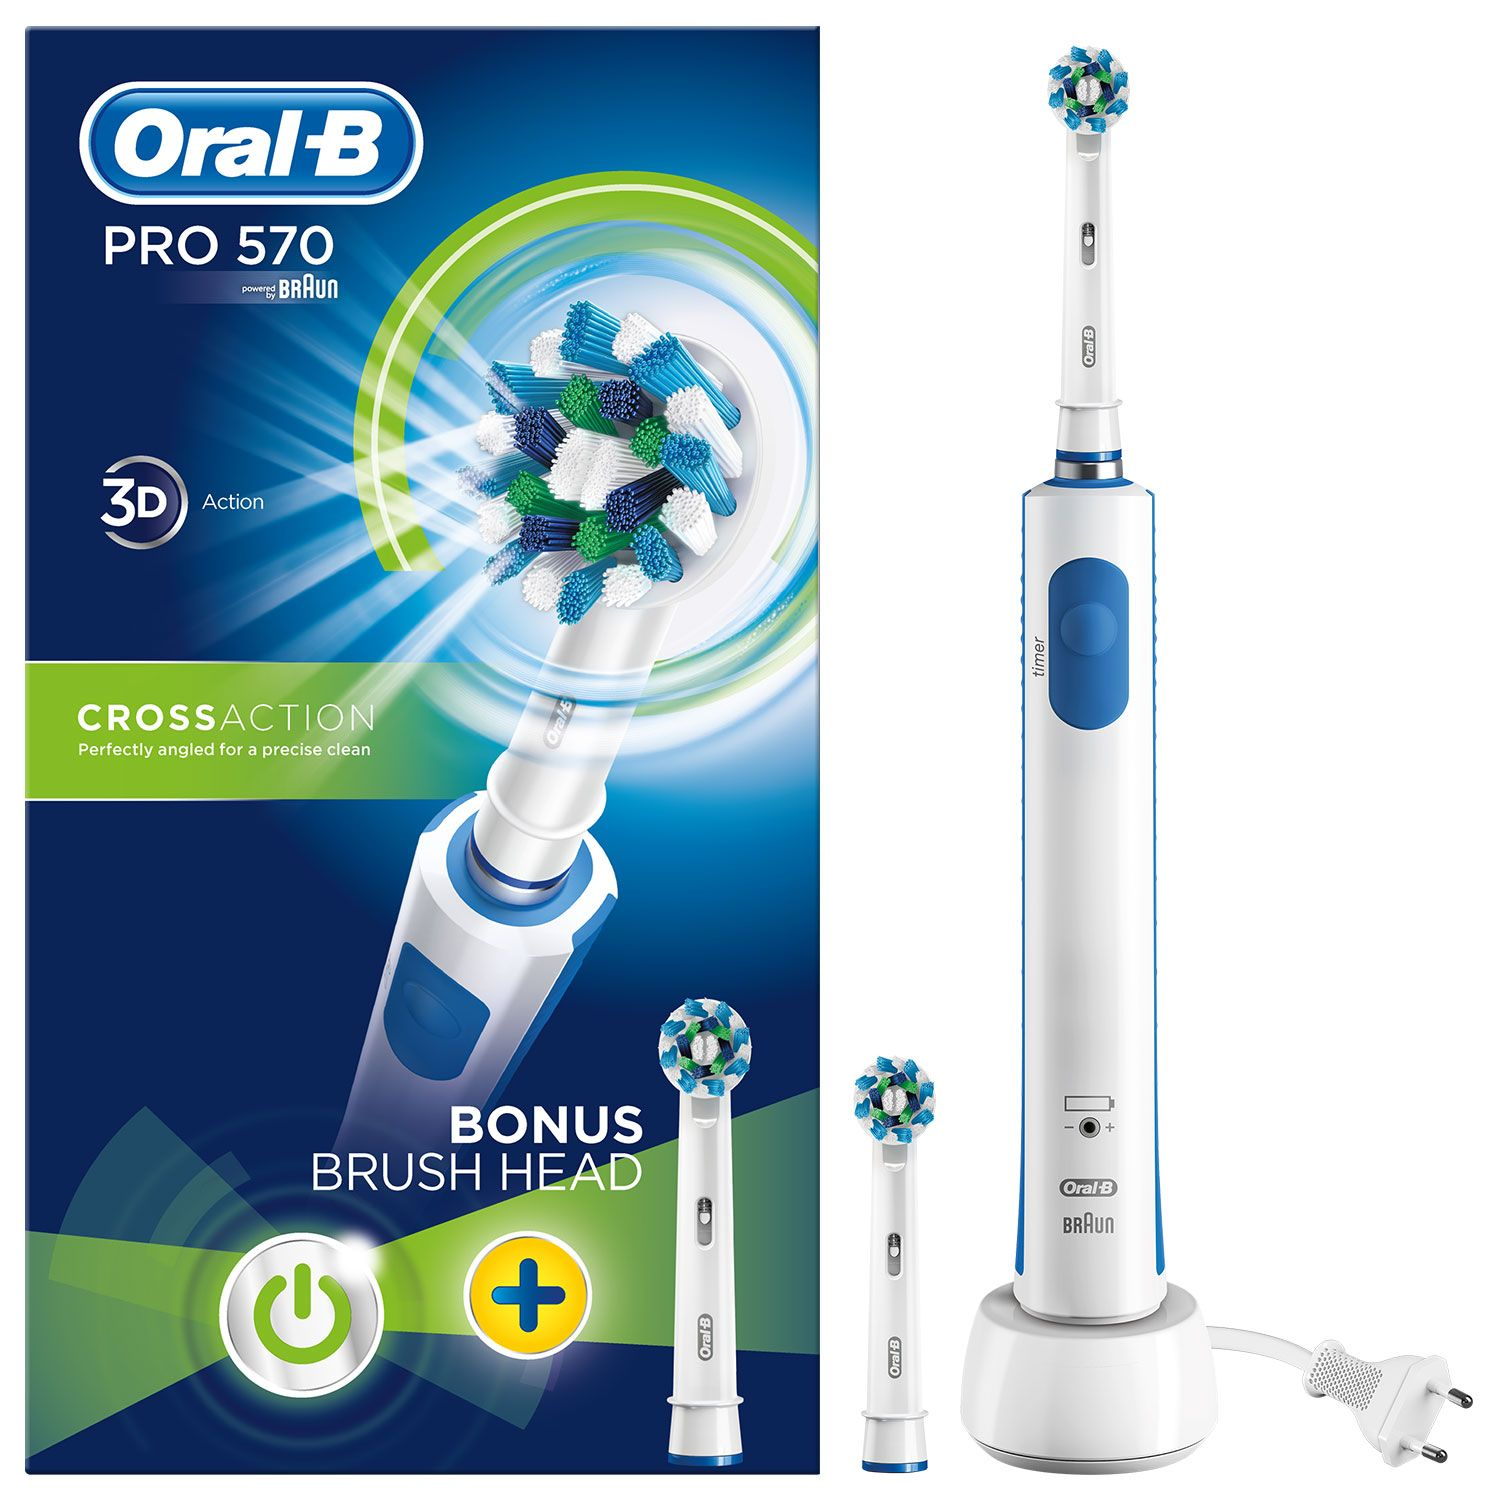 Oral B Pro 570 Cross Action Limited Edition Brush and Refill